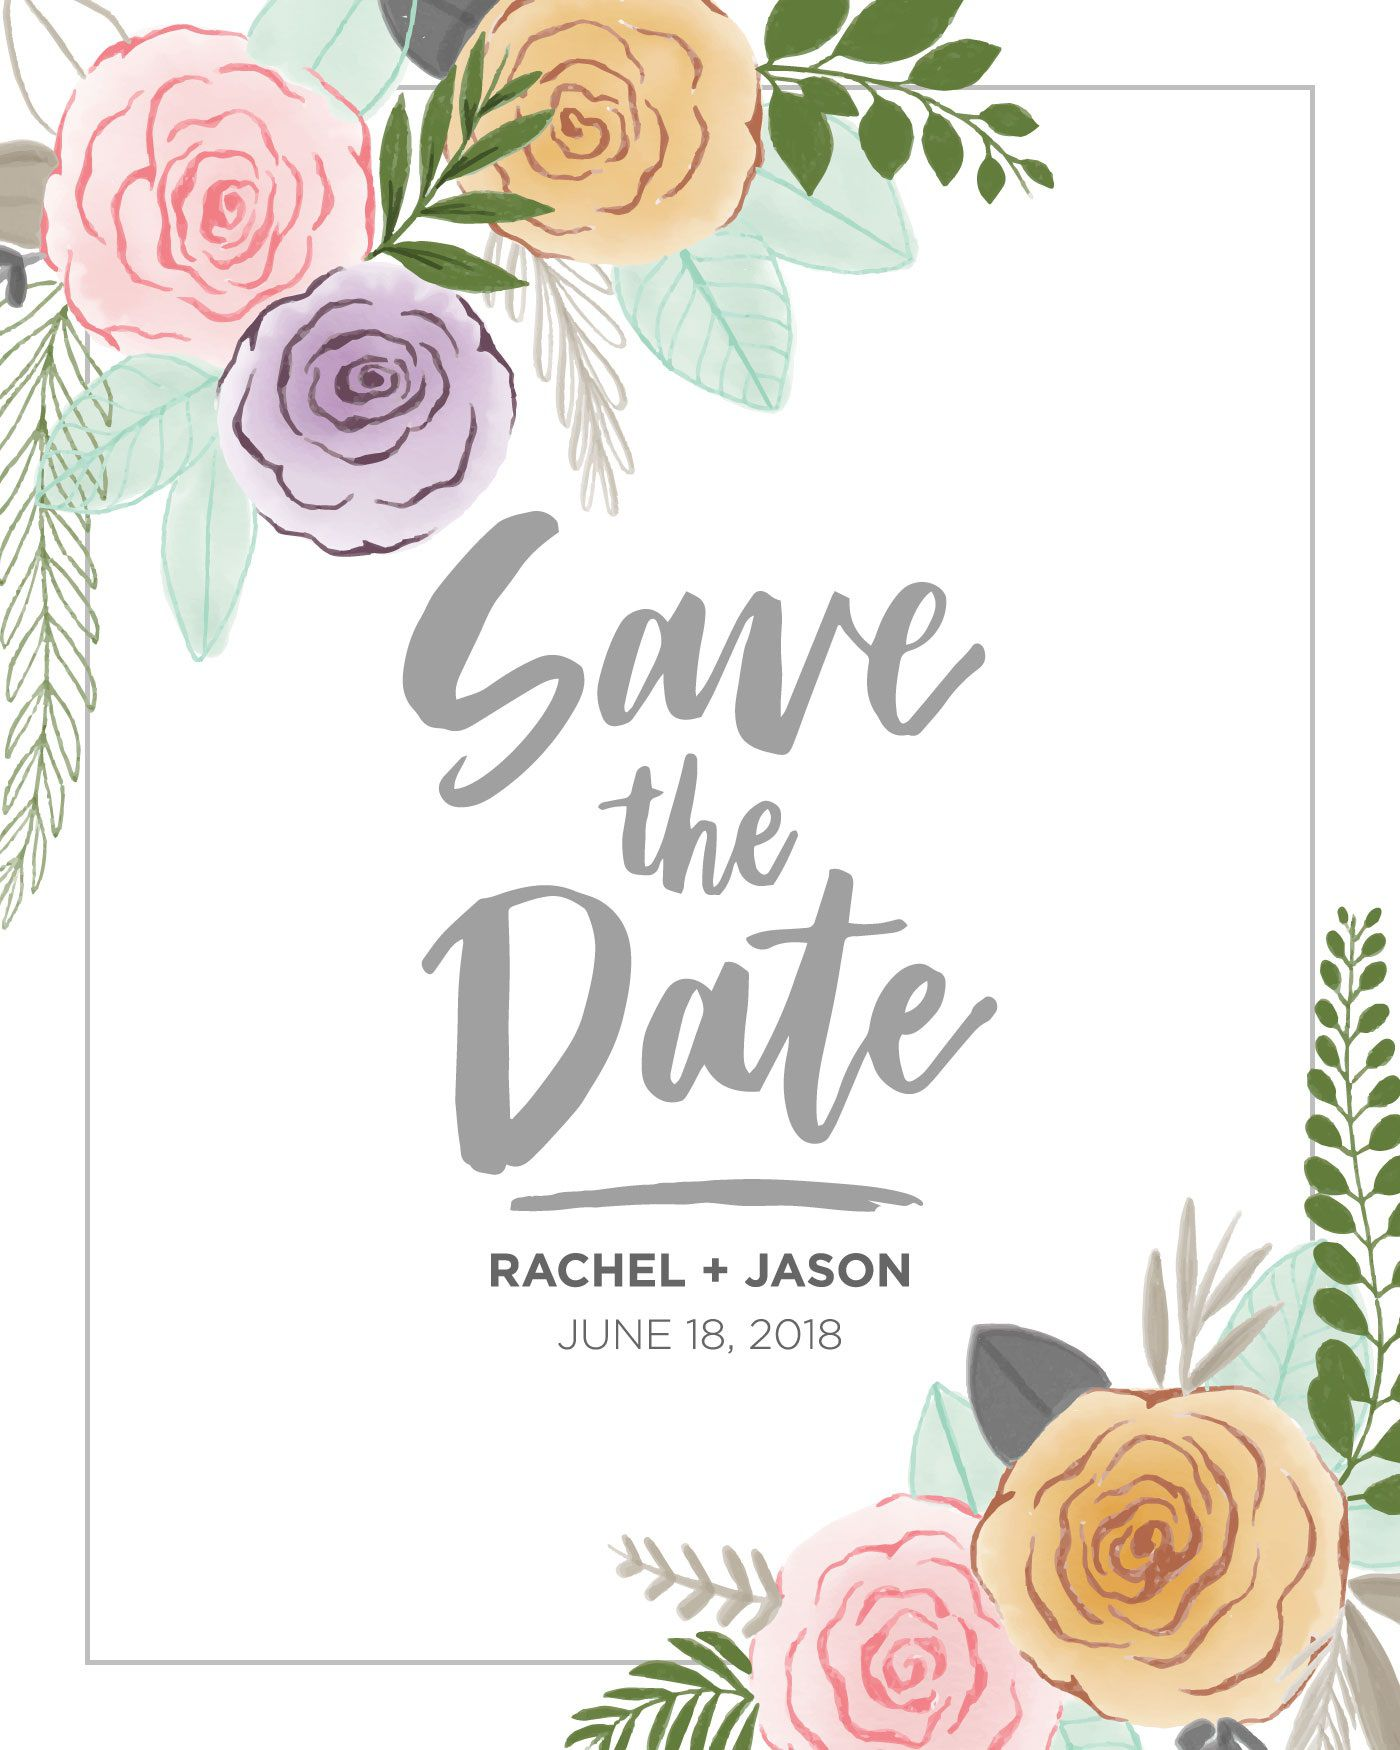 007 Breathtaking Save The Date Template Photoshop Sample  Adobe CardFull